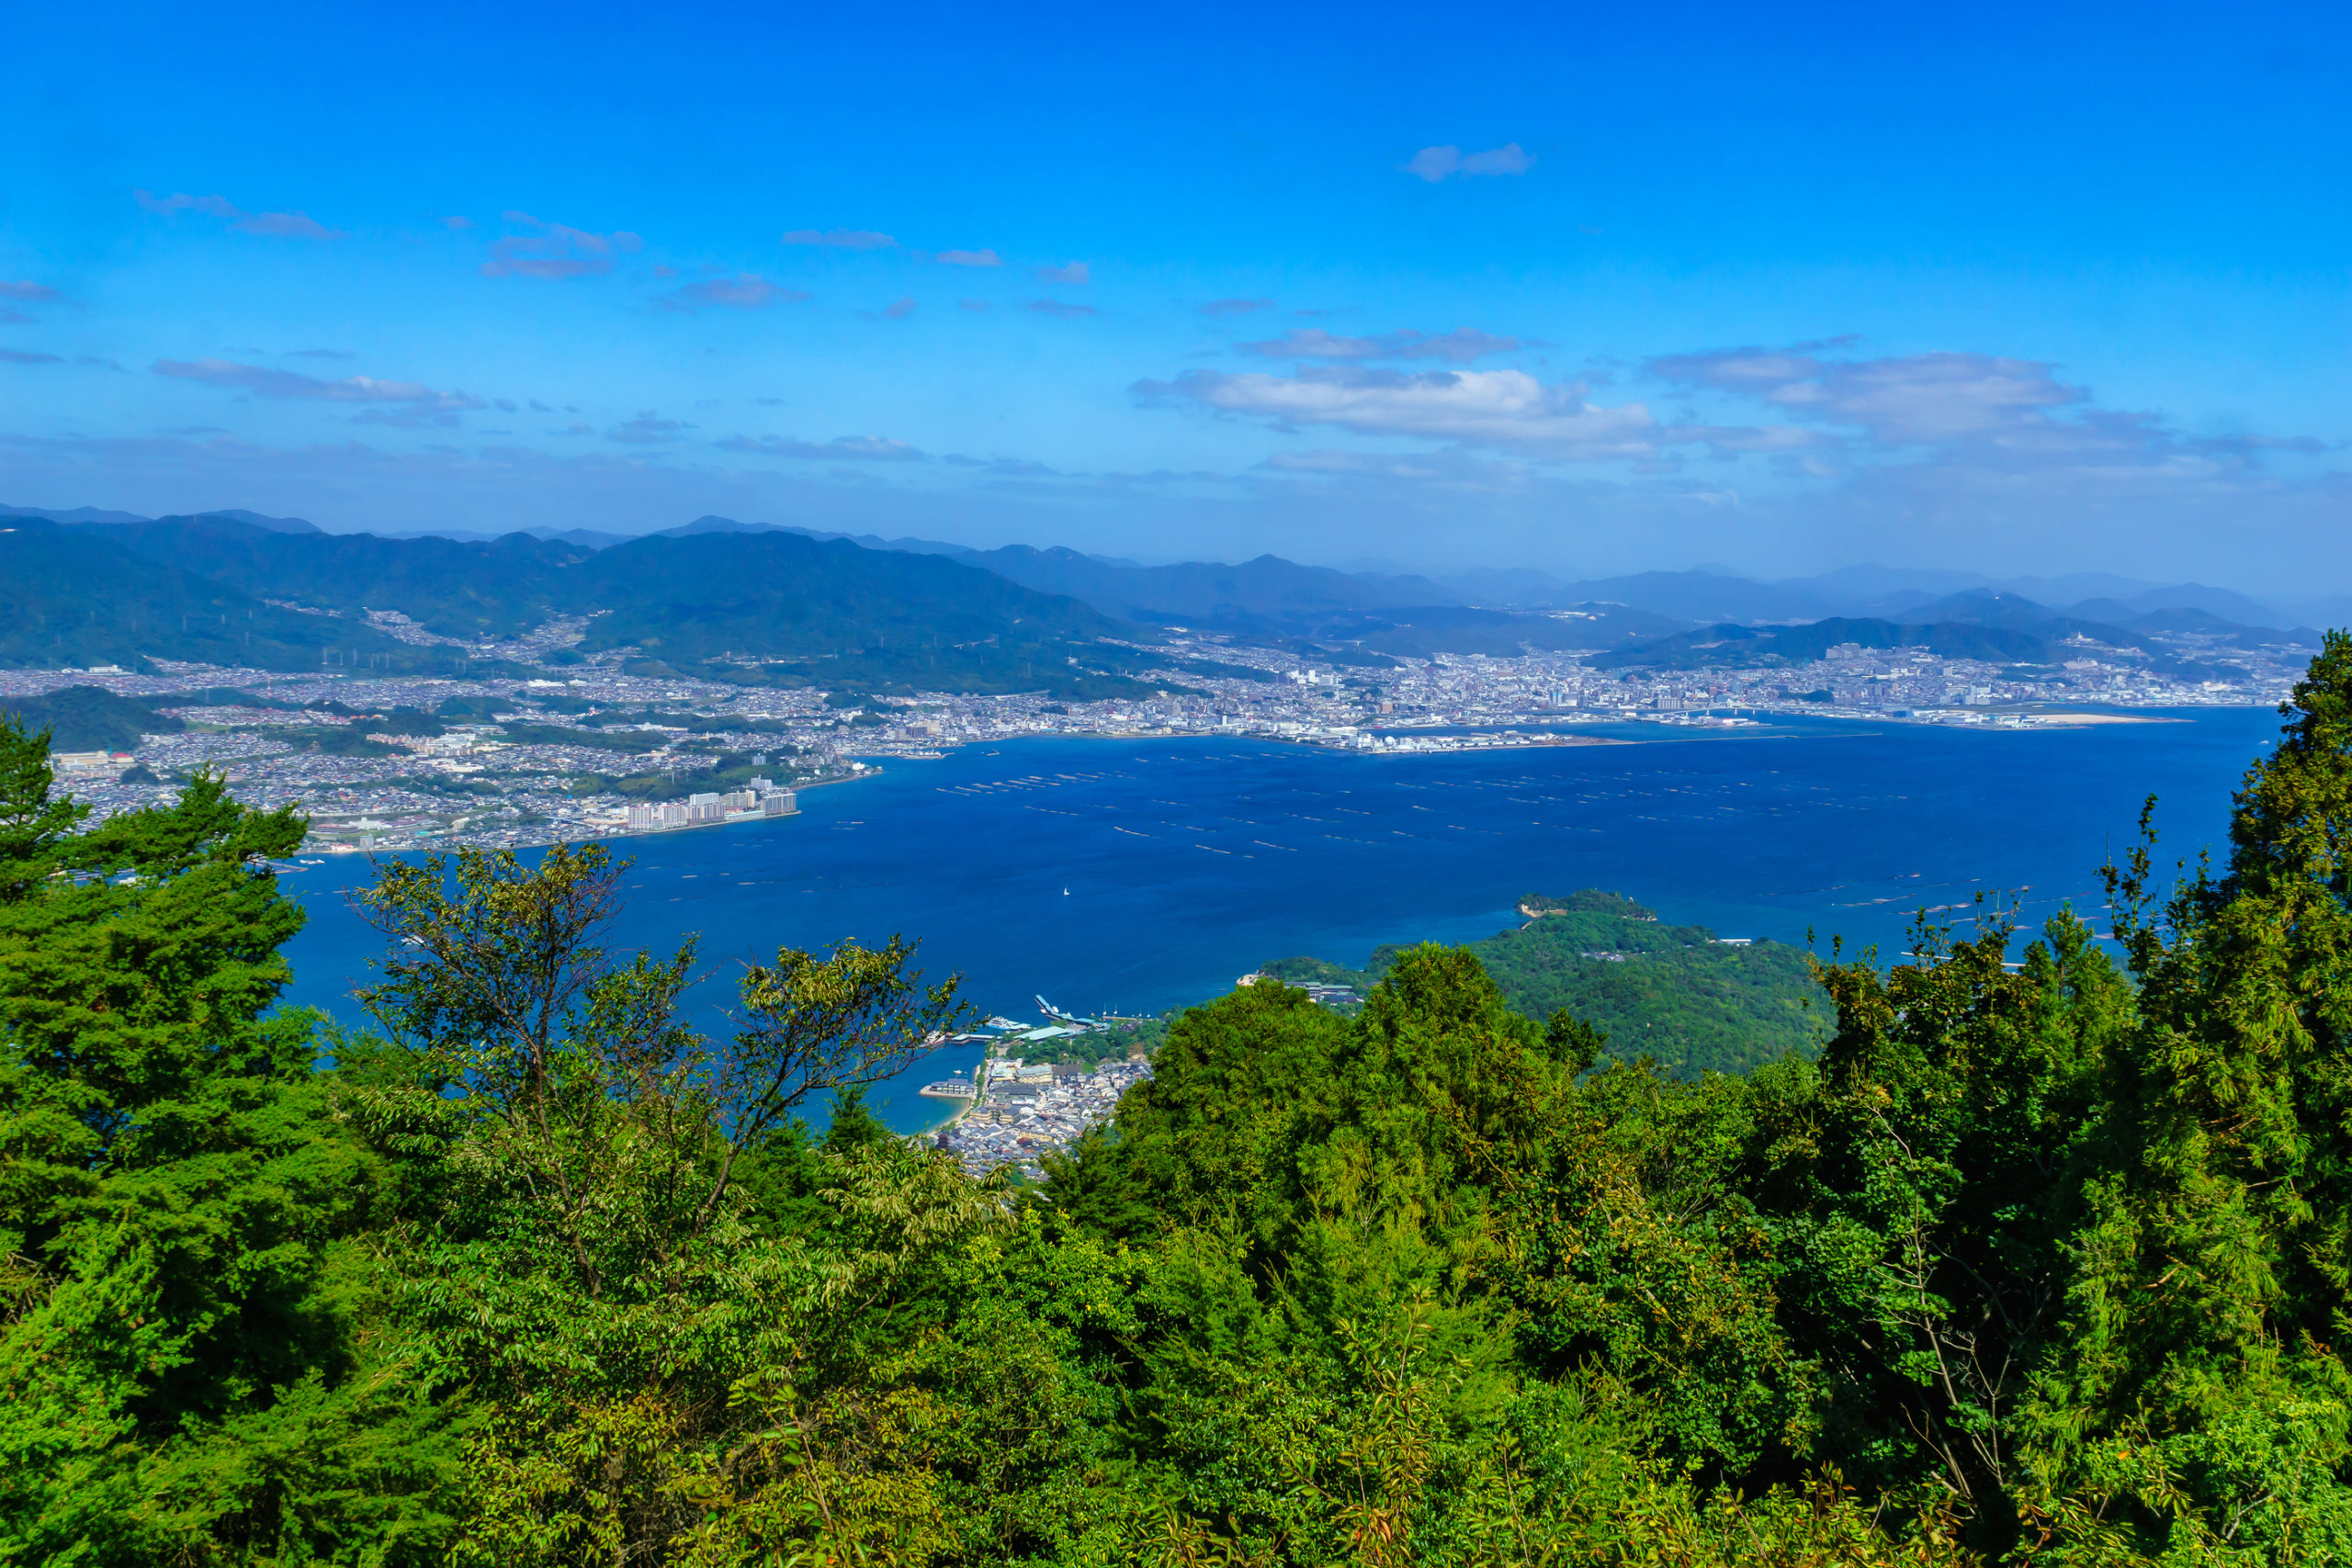 View of landscape from the top of Mount Misen in Miyajima